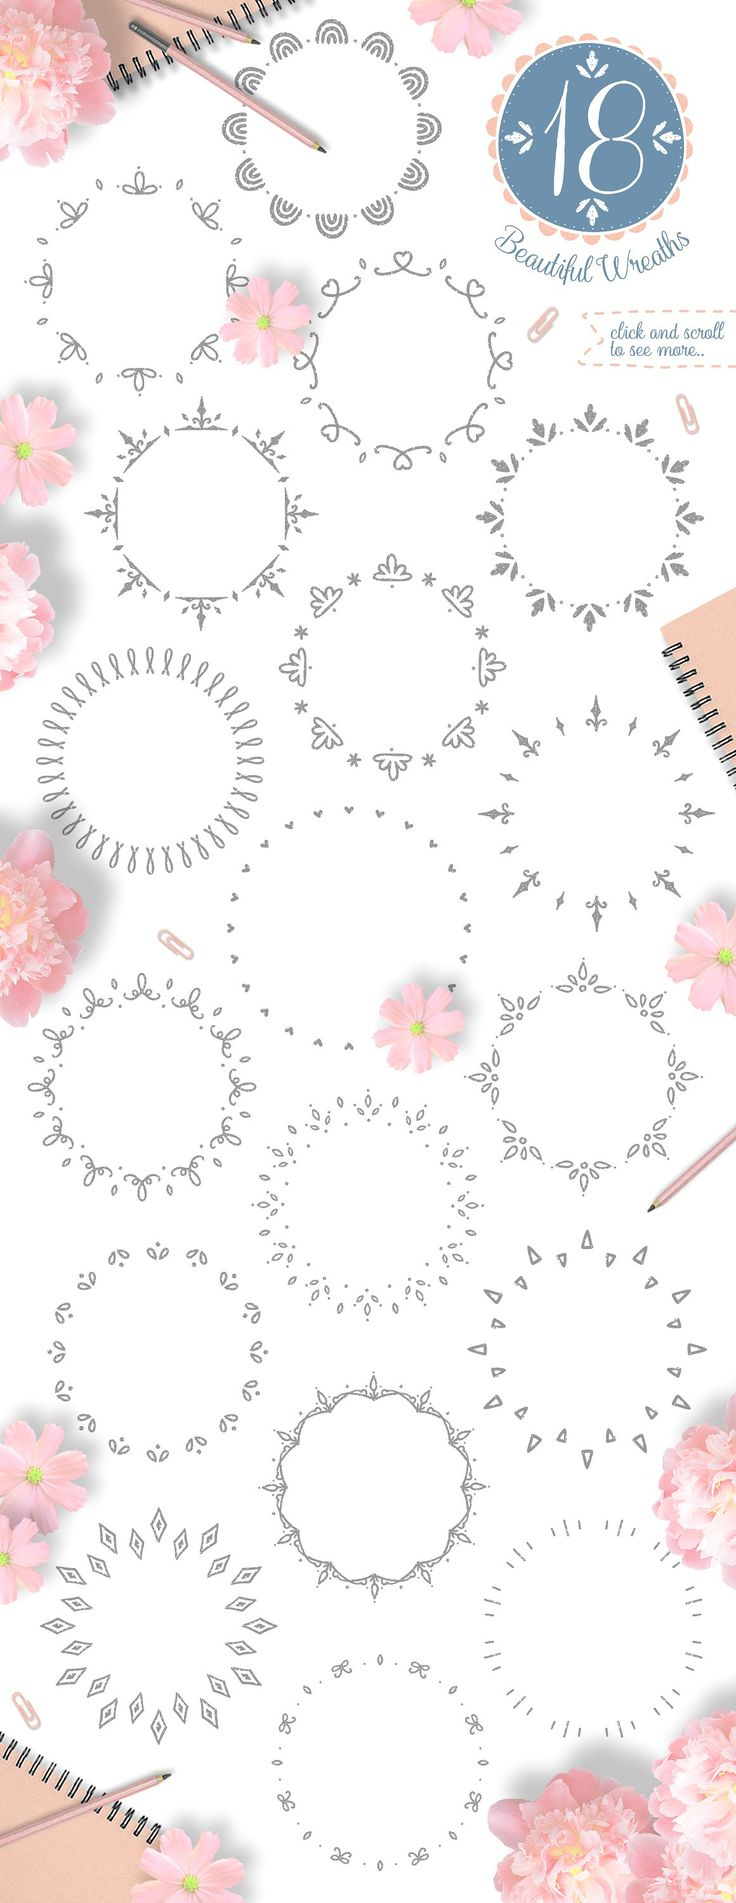 Pretty Little Things/ Decoration Kit by Euonia Meraki on @creativemarket   ornament and decoration toolkit in one single digital instant download. Beautiful wreath for various occasions.